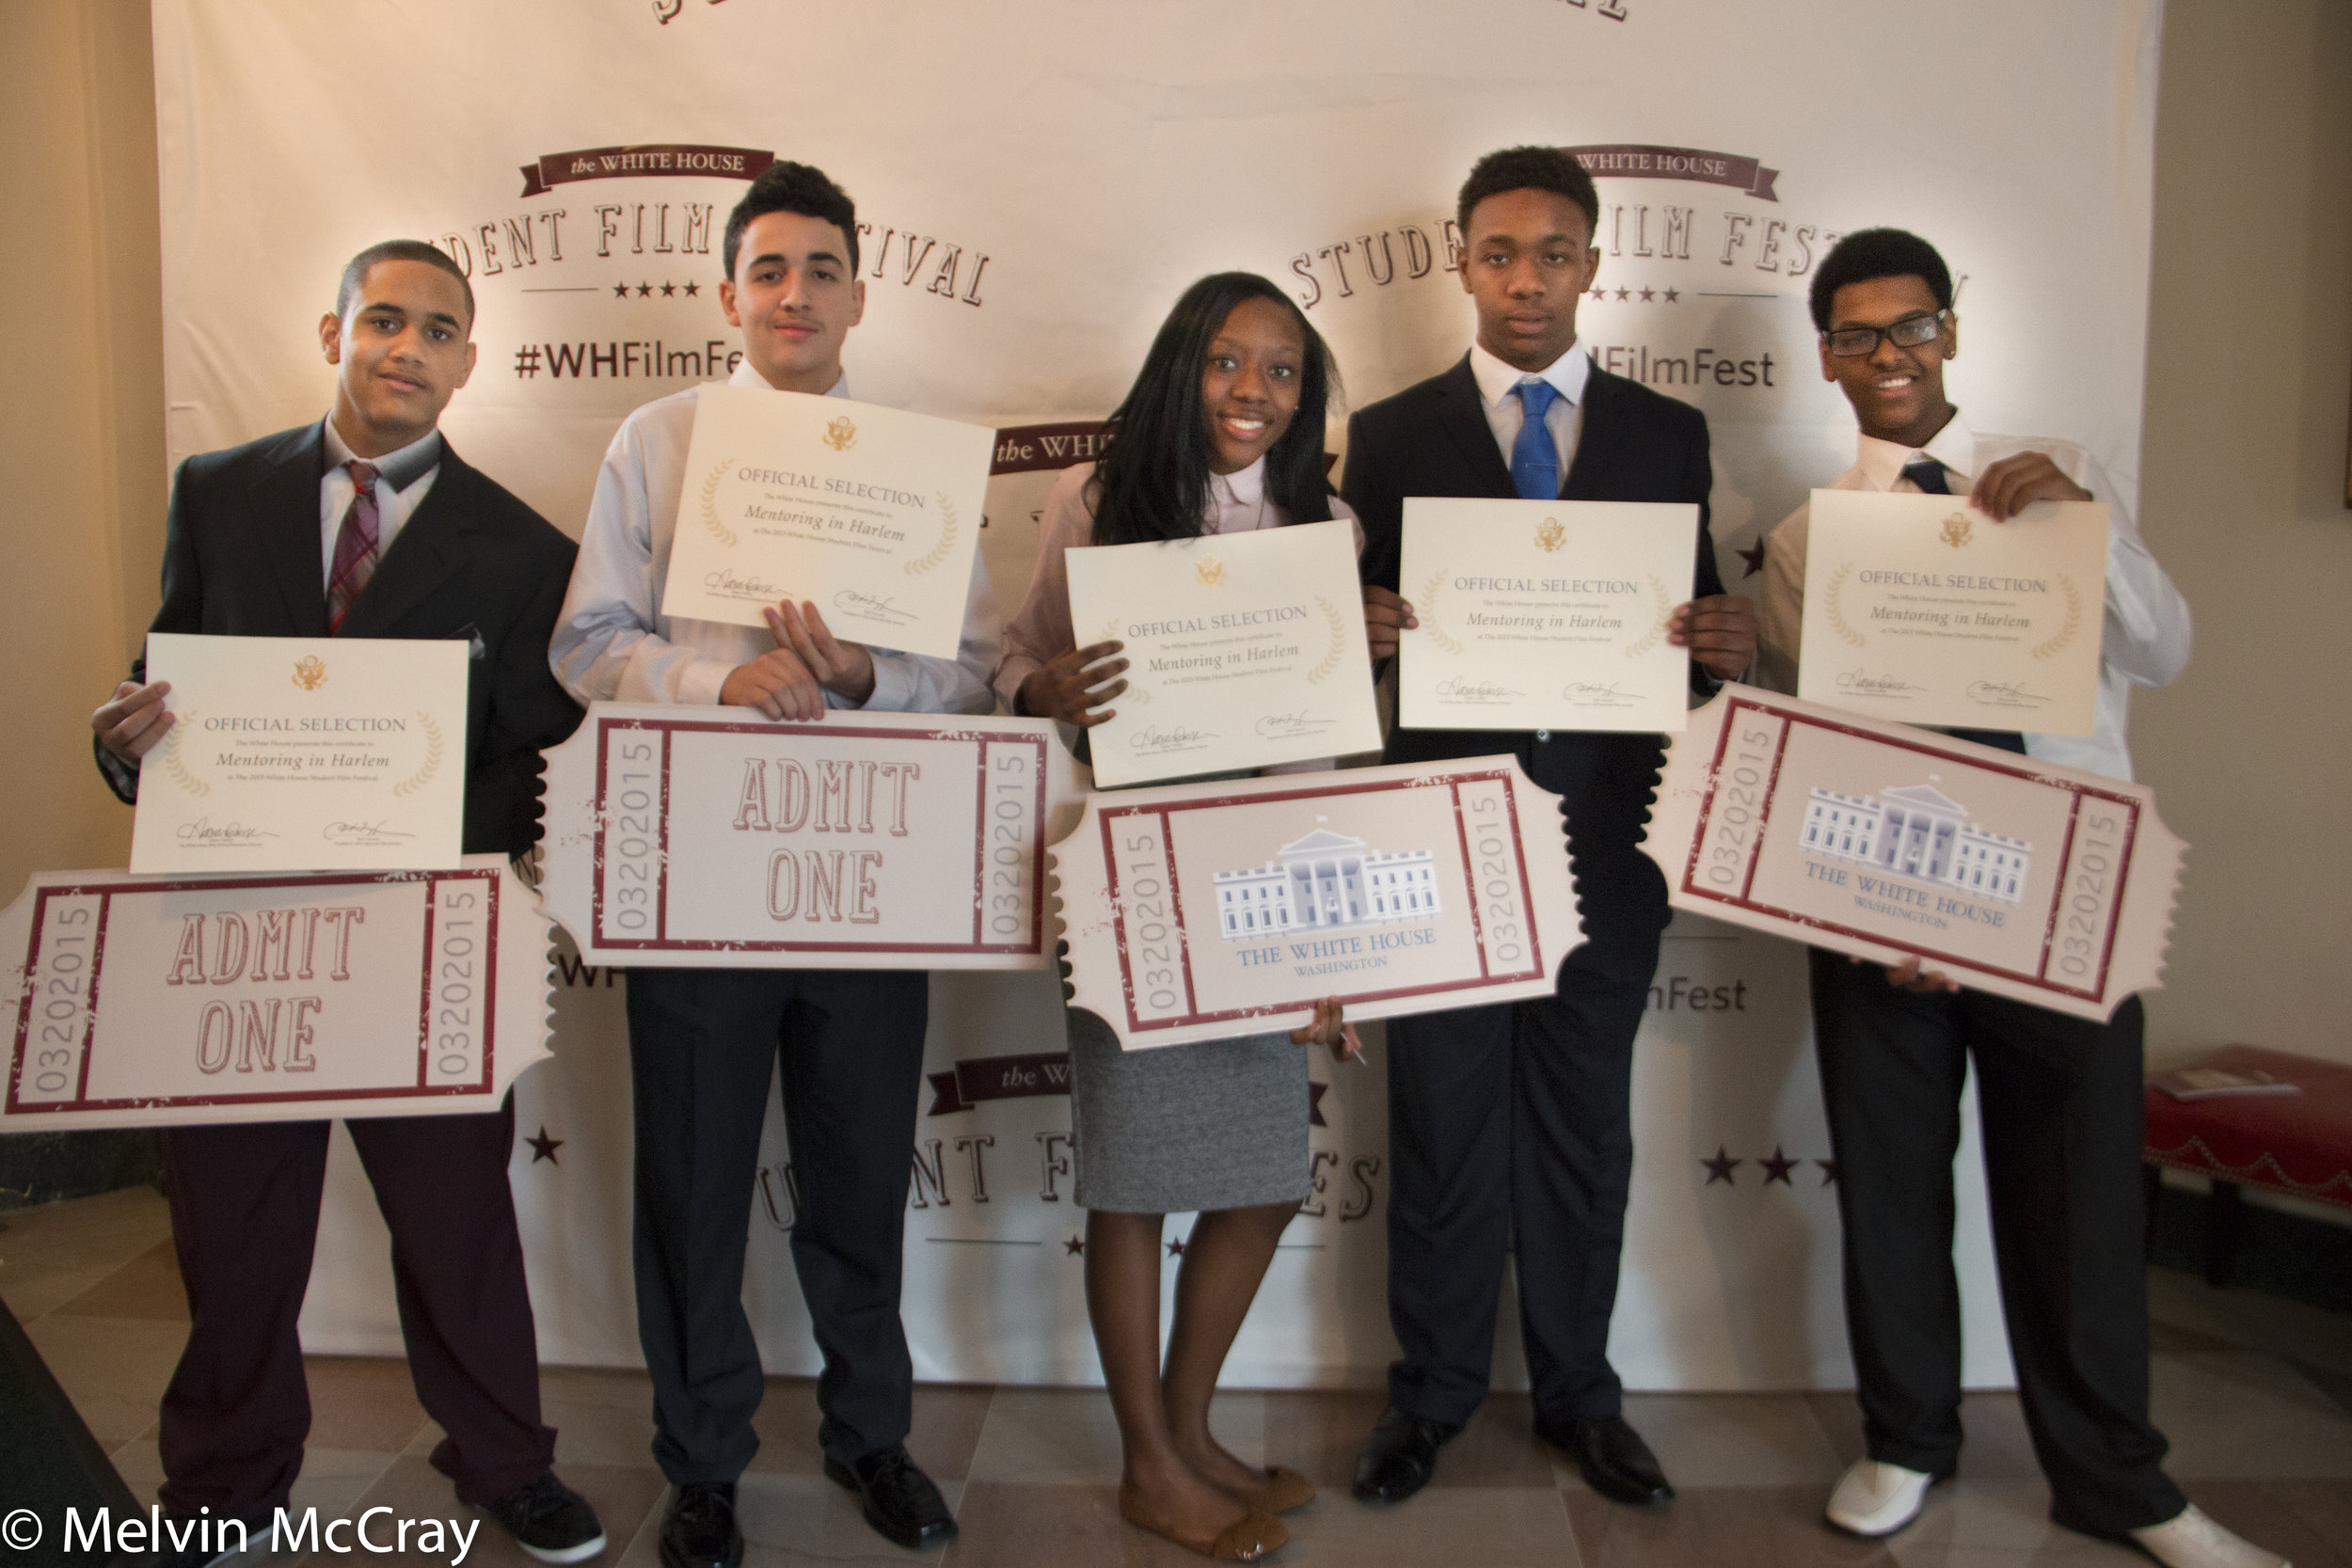 Daviid Maxwell, Jared Colozzo, Janayah Nicholson, Ojani Johnson and Chazz Johnson 2015 Winners